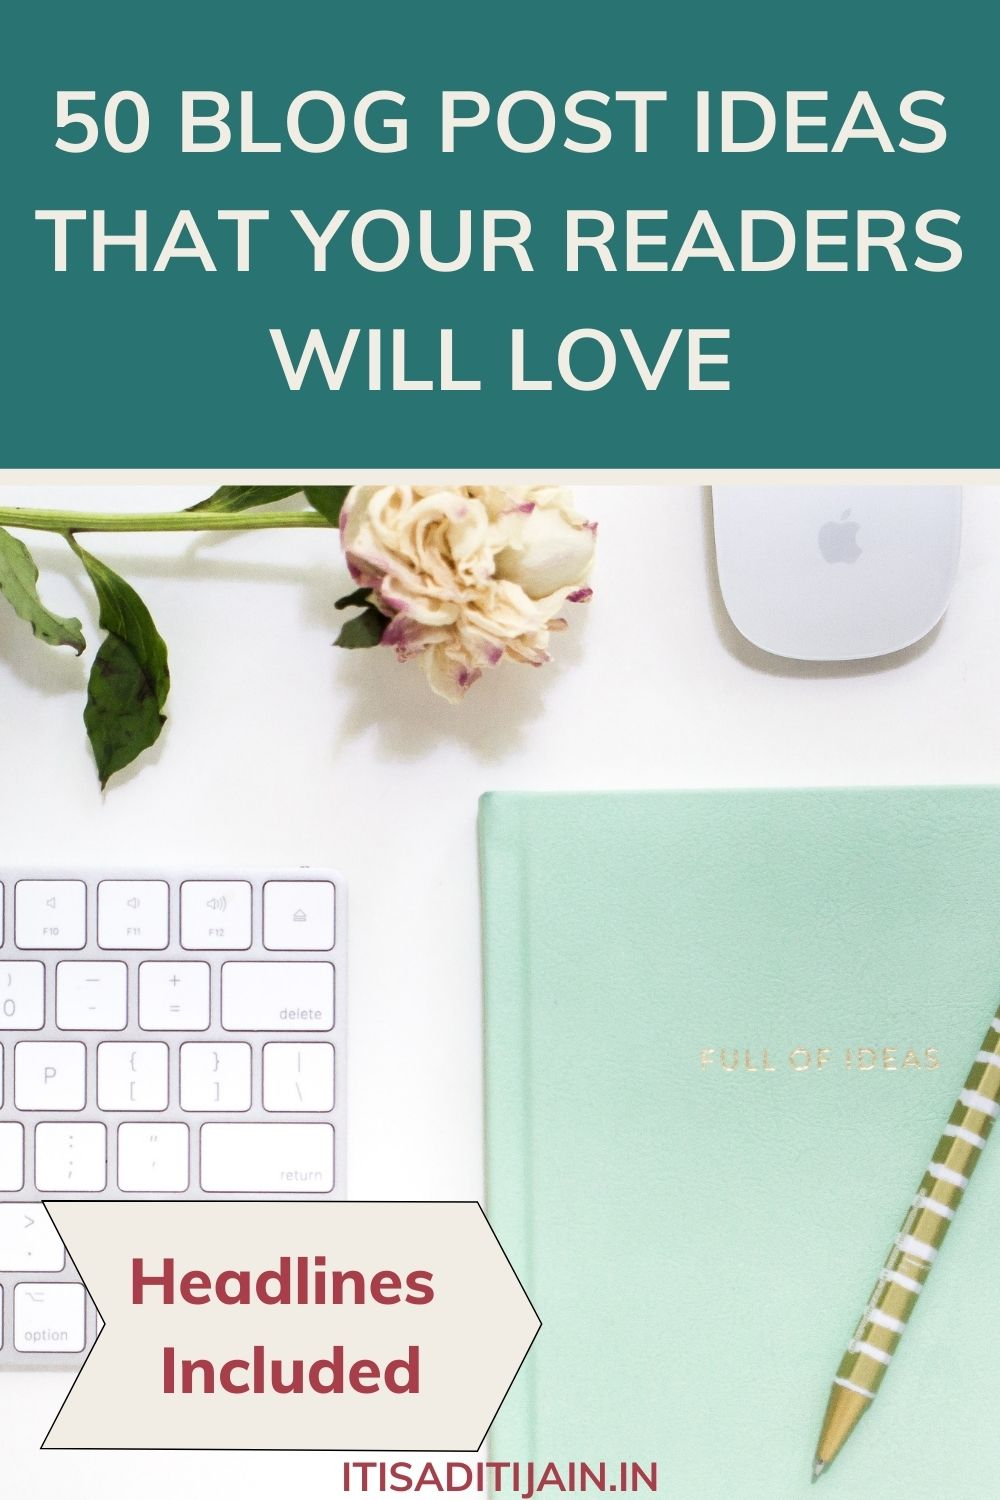 50 Blog Post Ideas That Your Readers Will Love